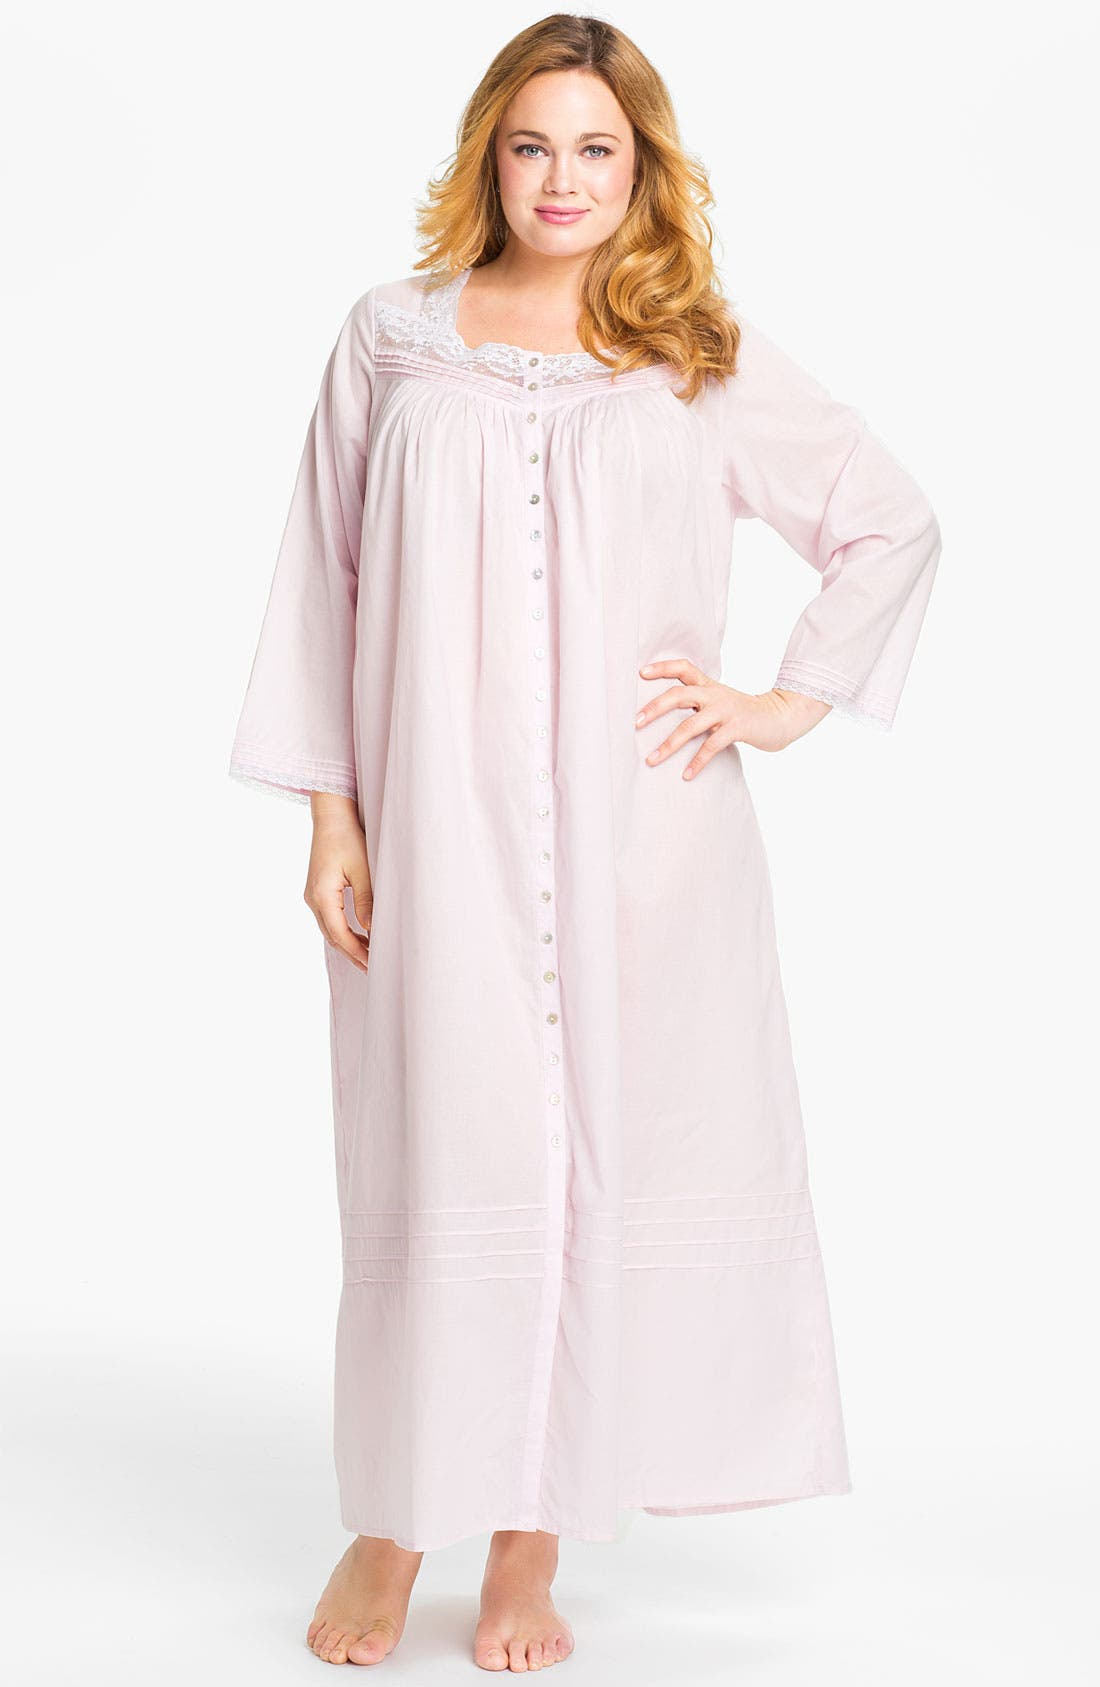 Alternate Image 1 Selected - Eileen West Button Front Nightgown (Plus Size)